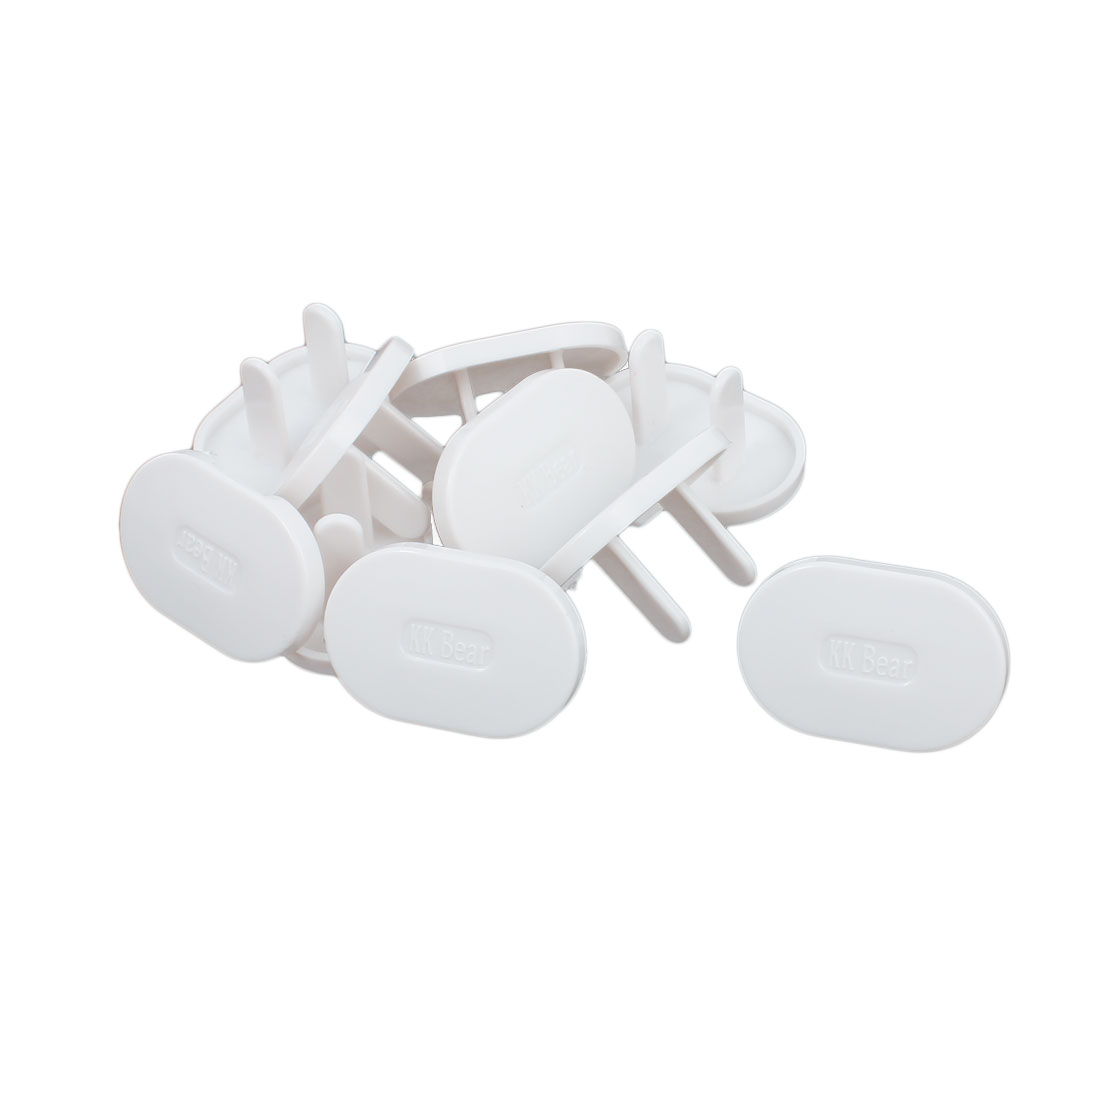 10 Pcs Plastic US Electric Outlet Safety Cover Cap Socket Protector Connector Guard White